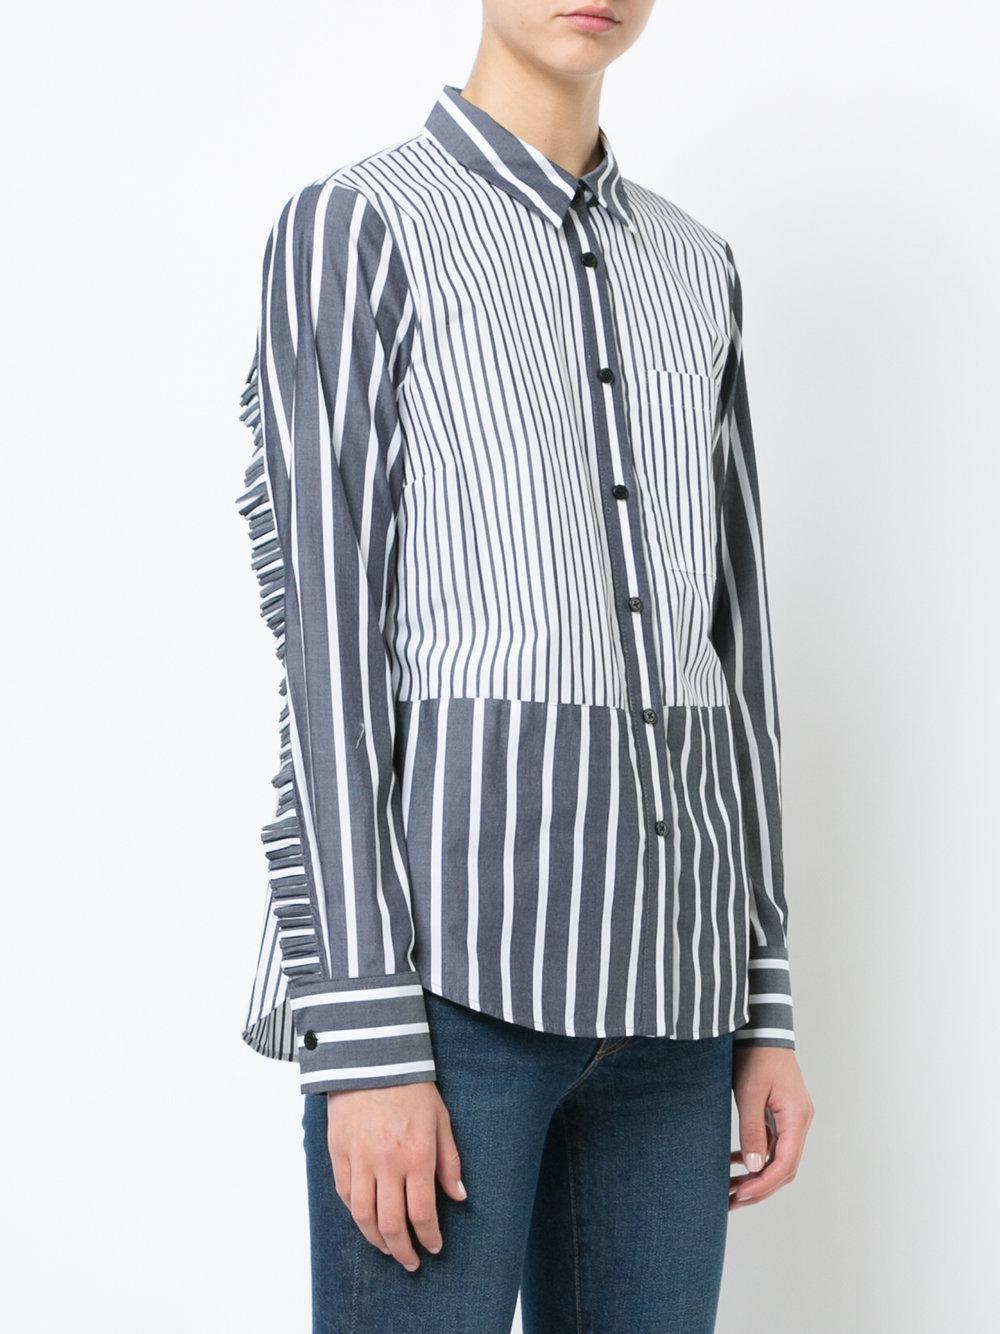 Long Sleeve Button-Down Shirt With Ruffle Detail - Grey Derek Lam Huge Surprise Fashion Style For Sale Outlet Locations Cheap Price Buy Cheap New Arrival wfg2b